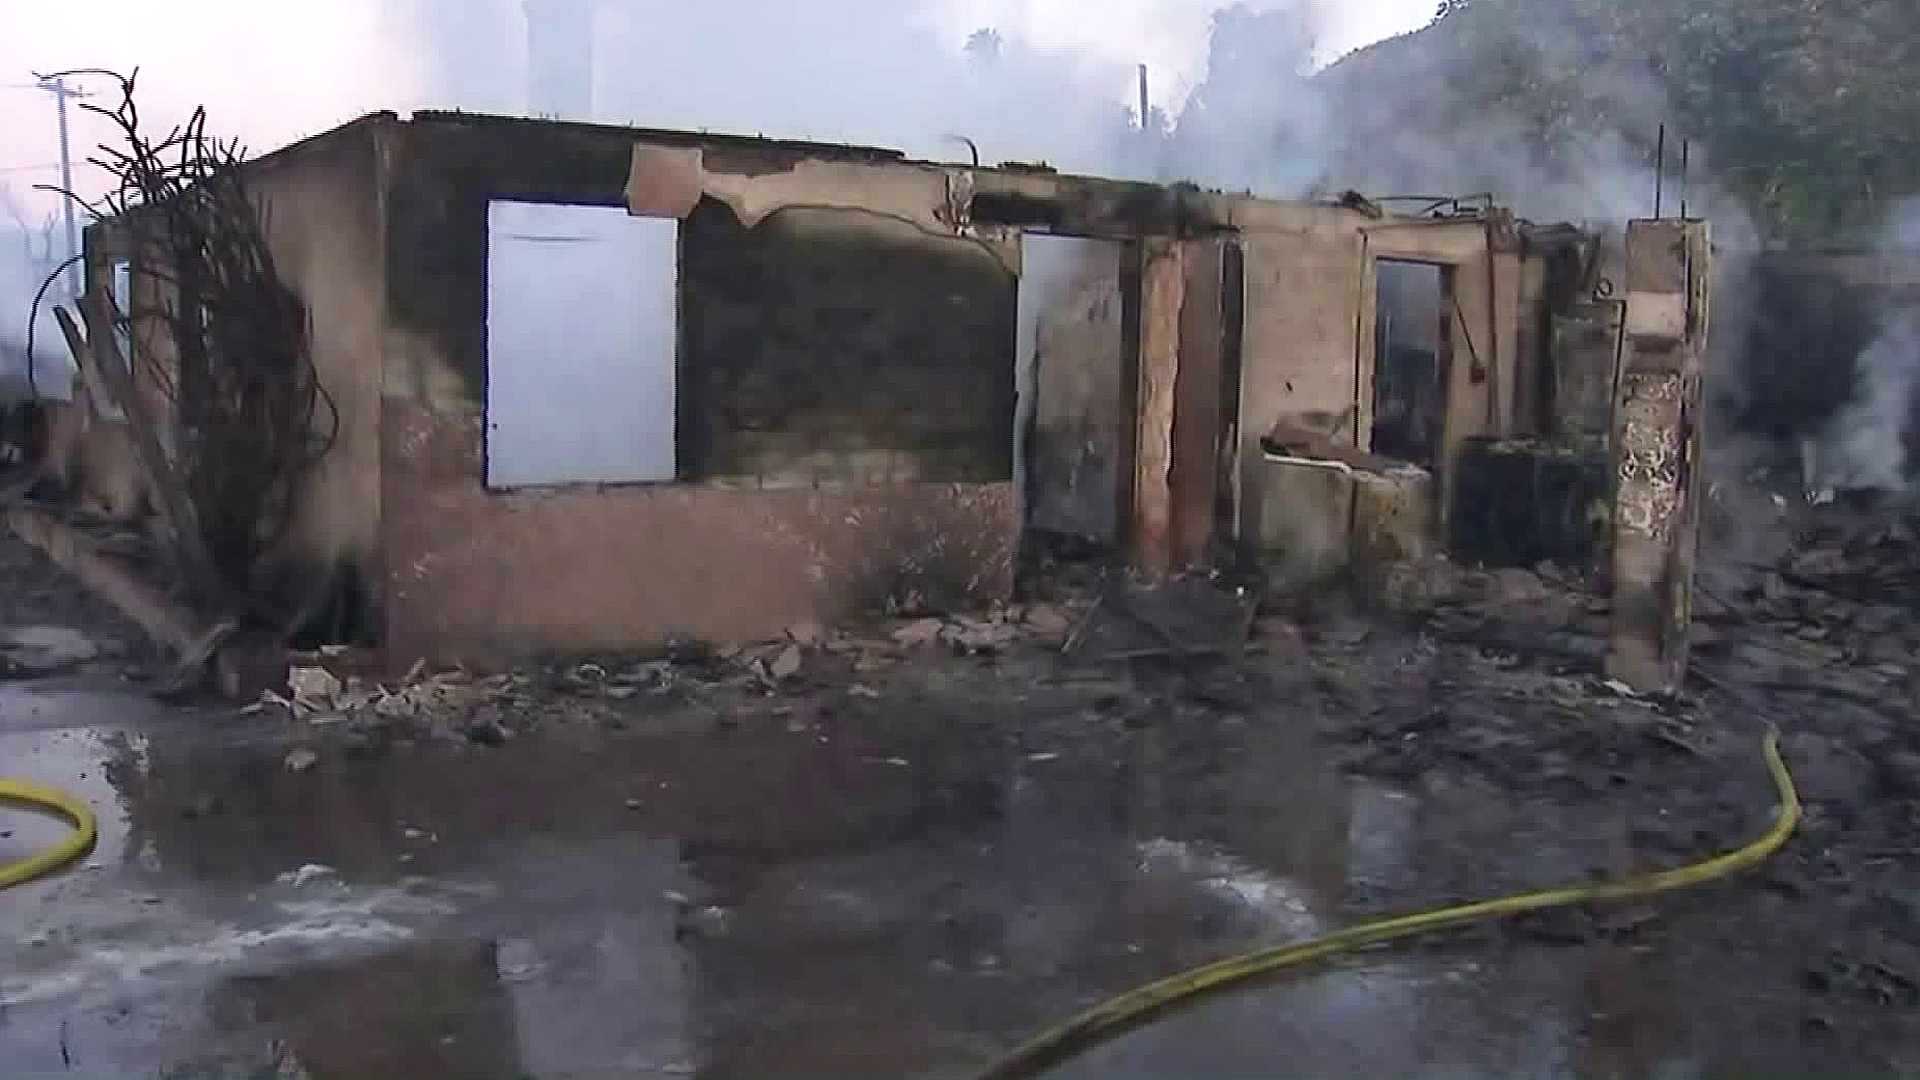 A destroyed home is seen in the wake of the Hillside Fire on Oct. 31, 2019. (Credit: KTLA)